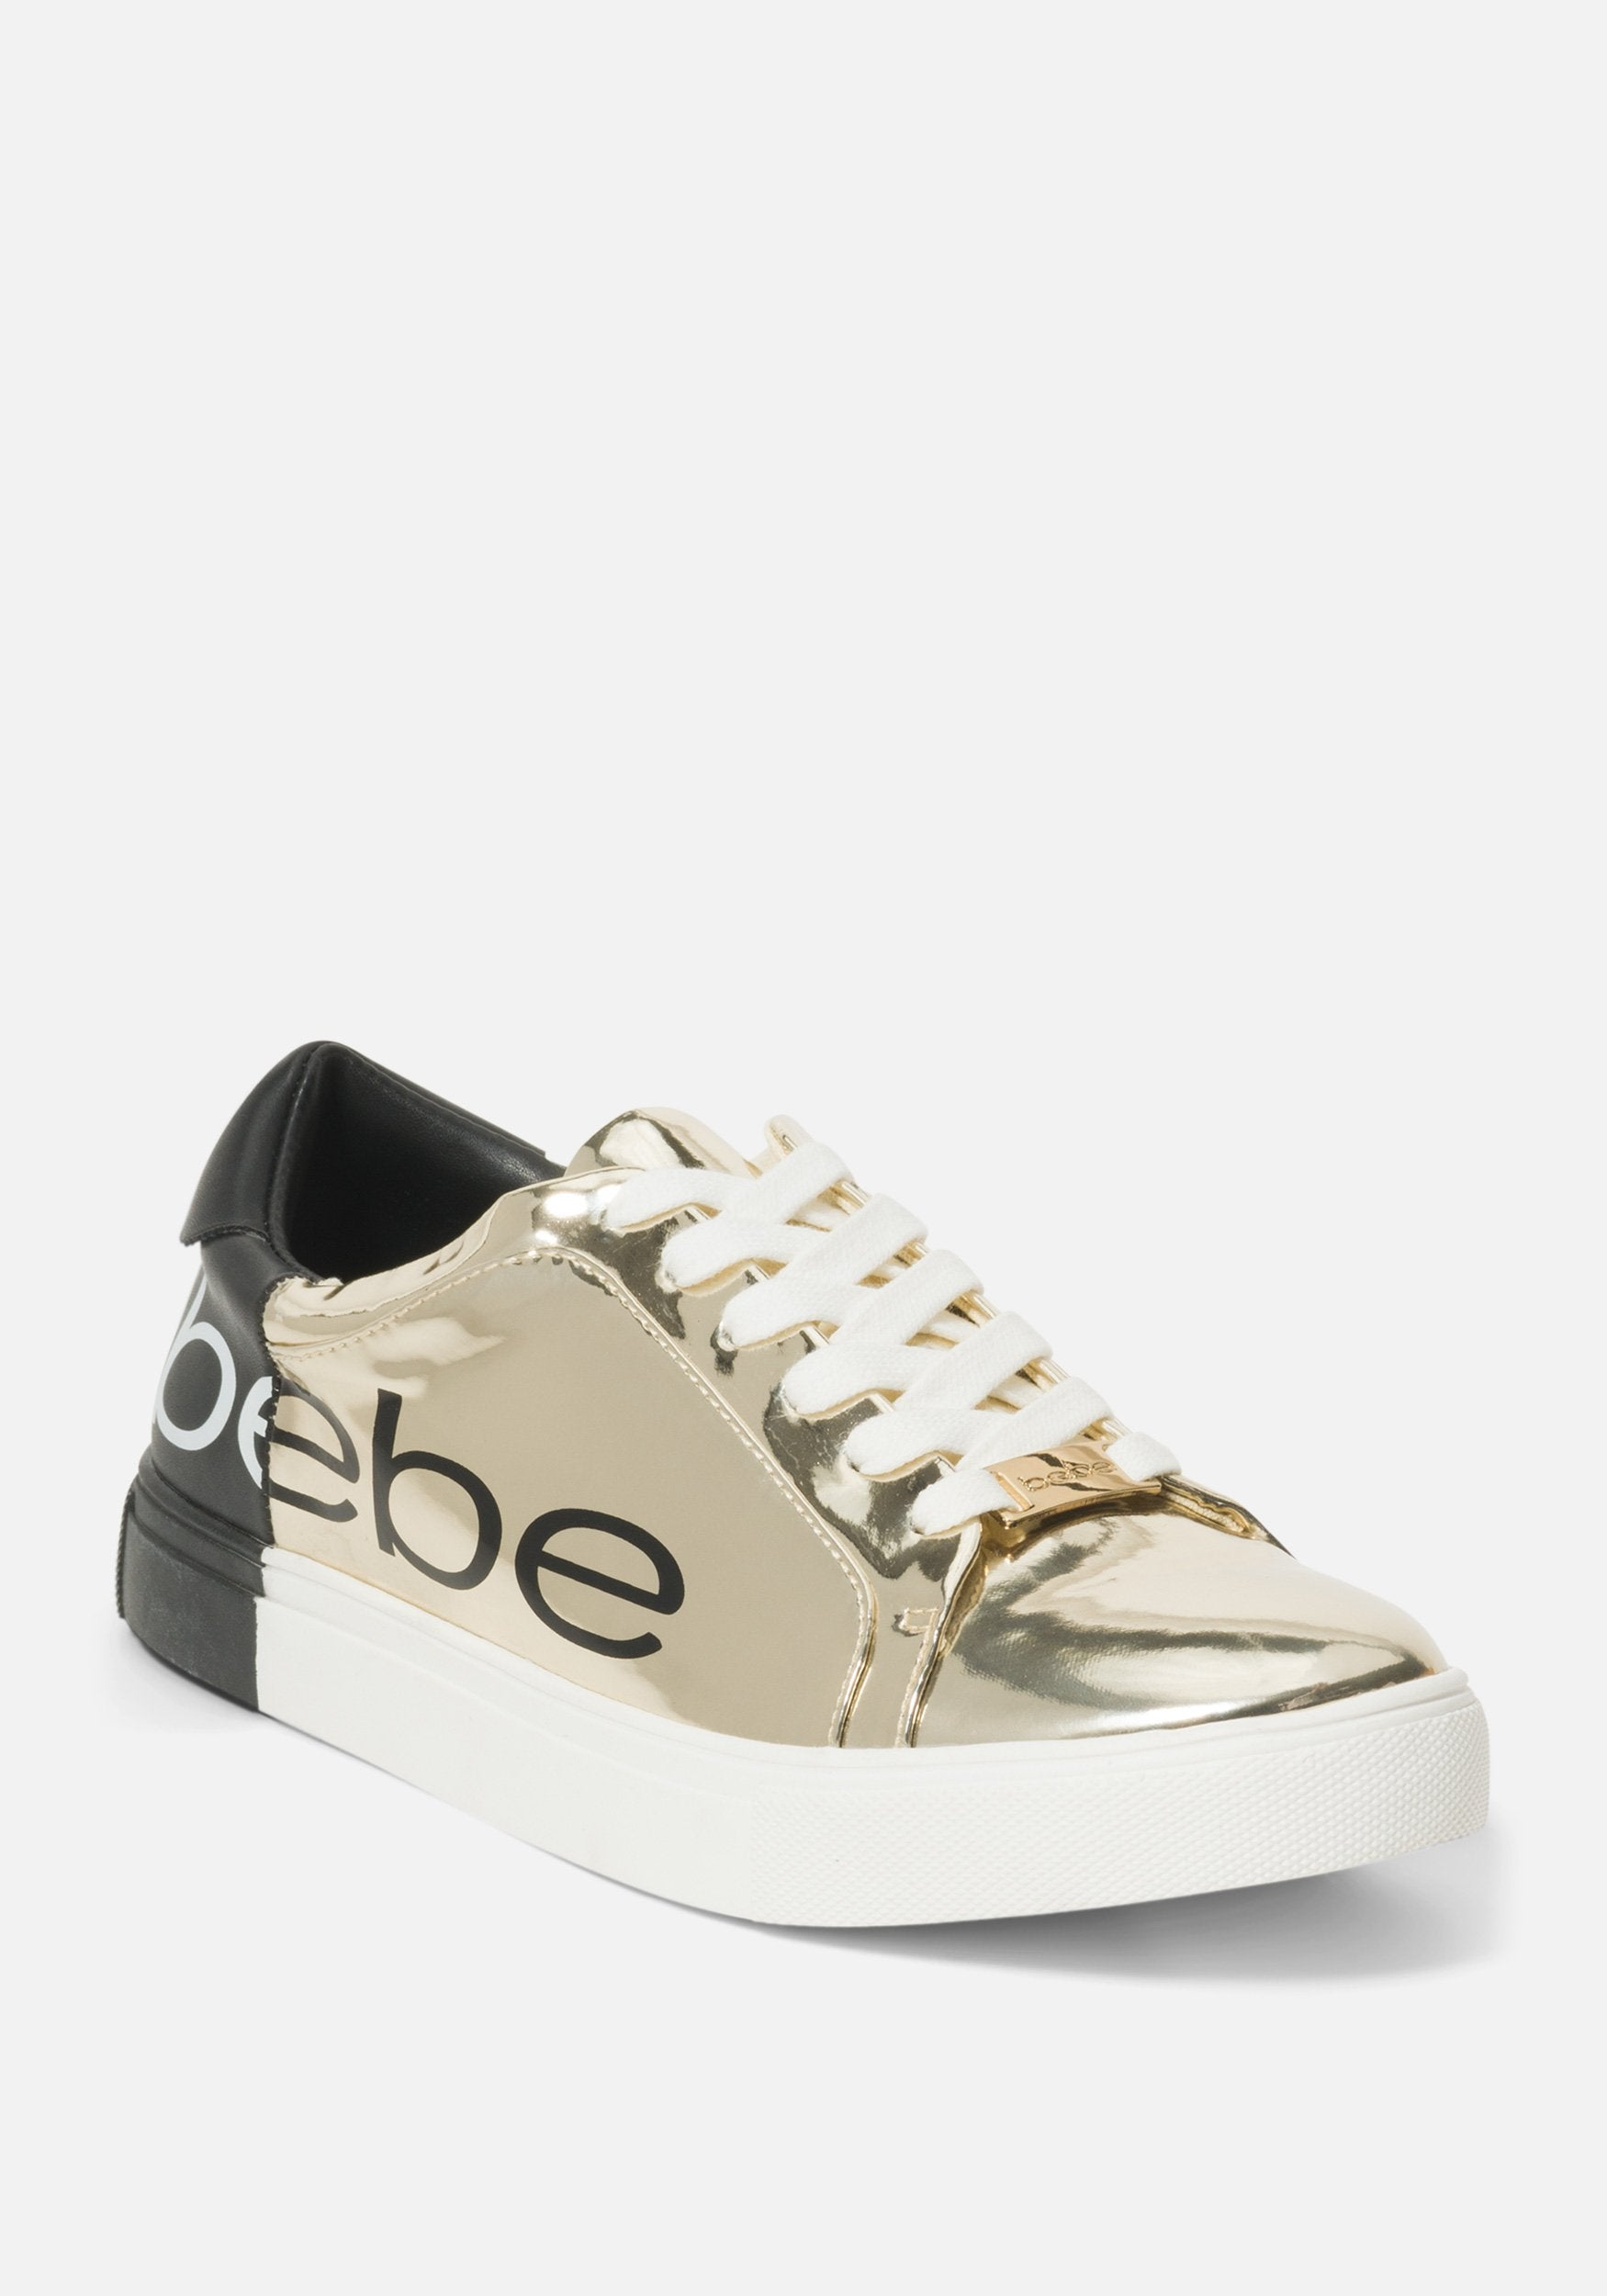 Image of Bebe Women's Charley Shoe, Size 8.5 in GOLD/BLACK Synthetic